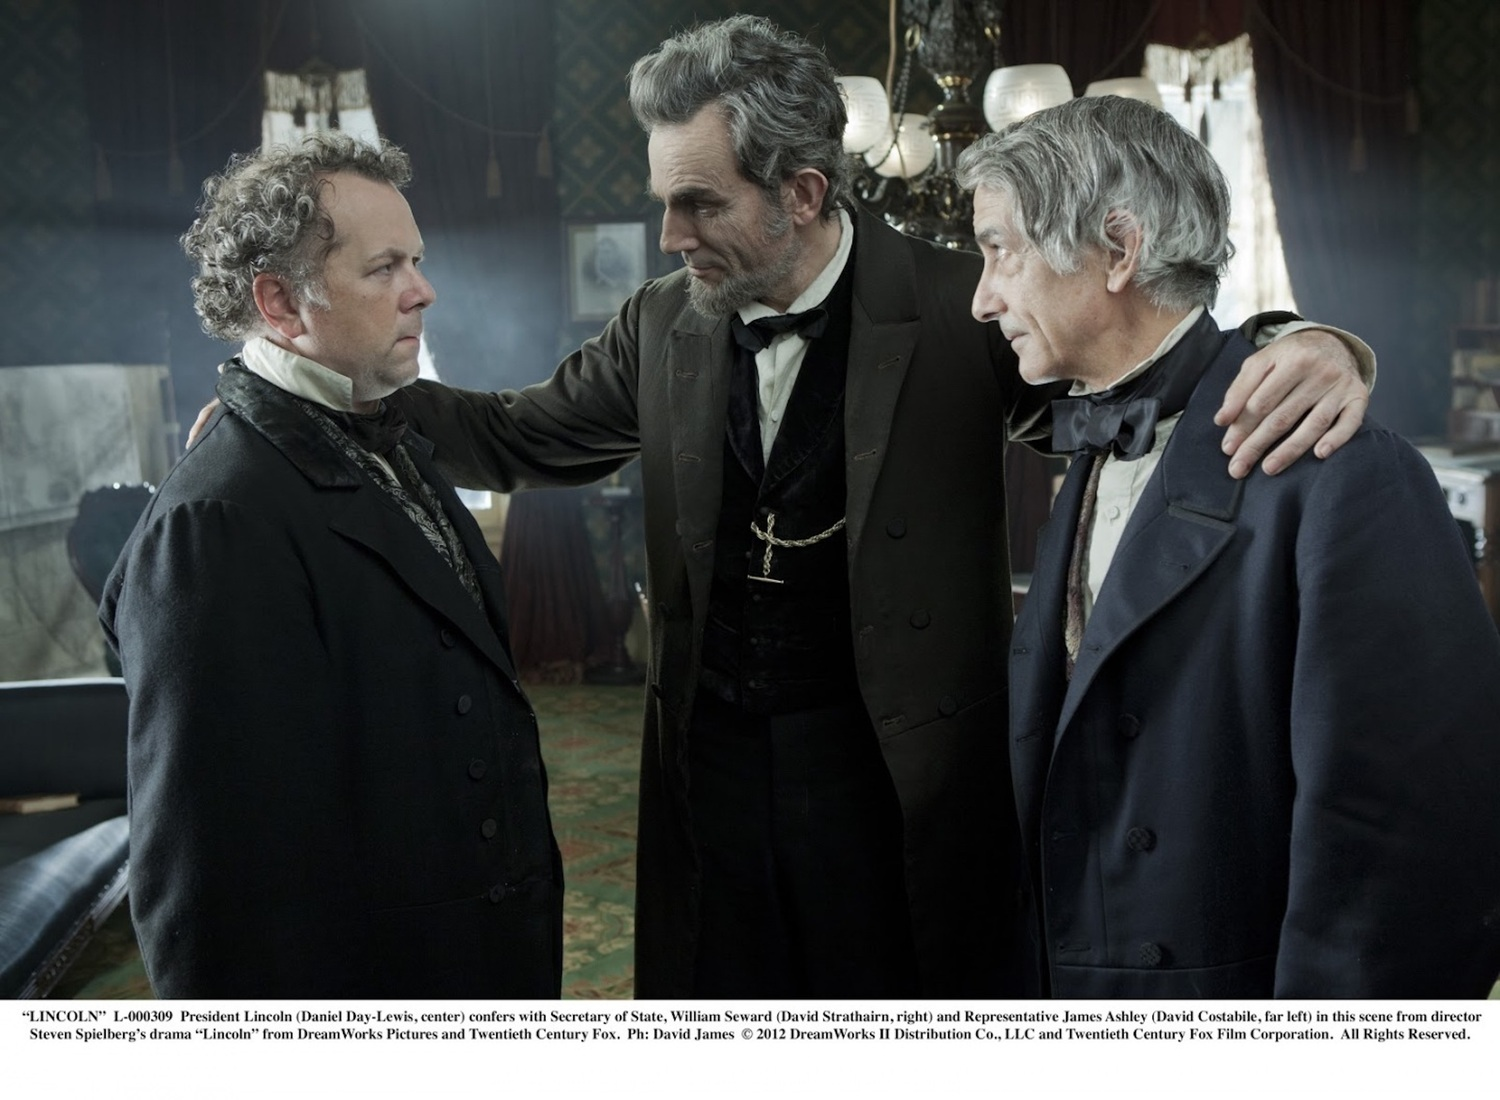 "Abraham Lincoln (Daniel Day-Lewis, center) consults with James Ashley (David Costible, left) and William Seward (David Strathairn, right) in Steven Spielberg's drama ""Lincoln"" from DreamWorks Pictures and Twentieth Century Fox."